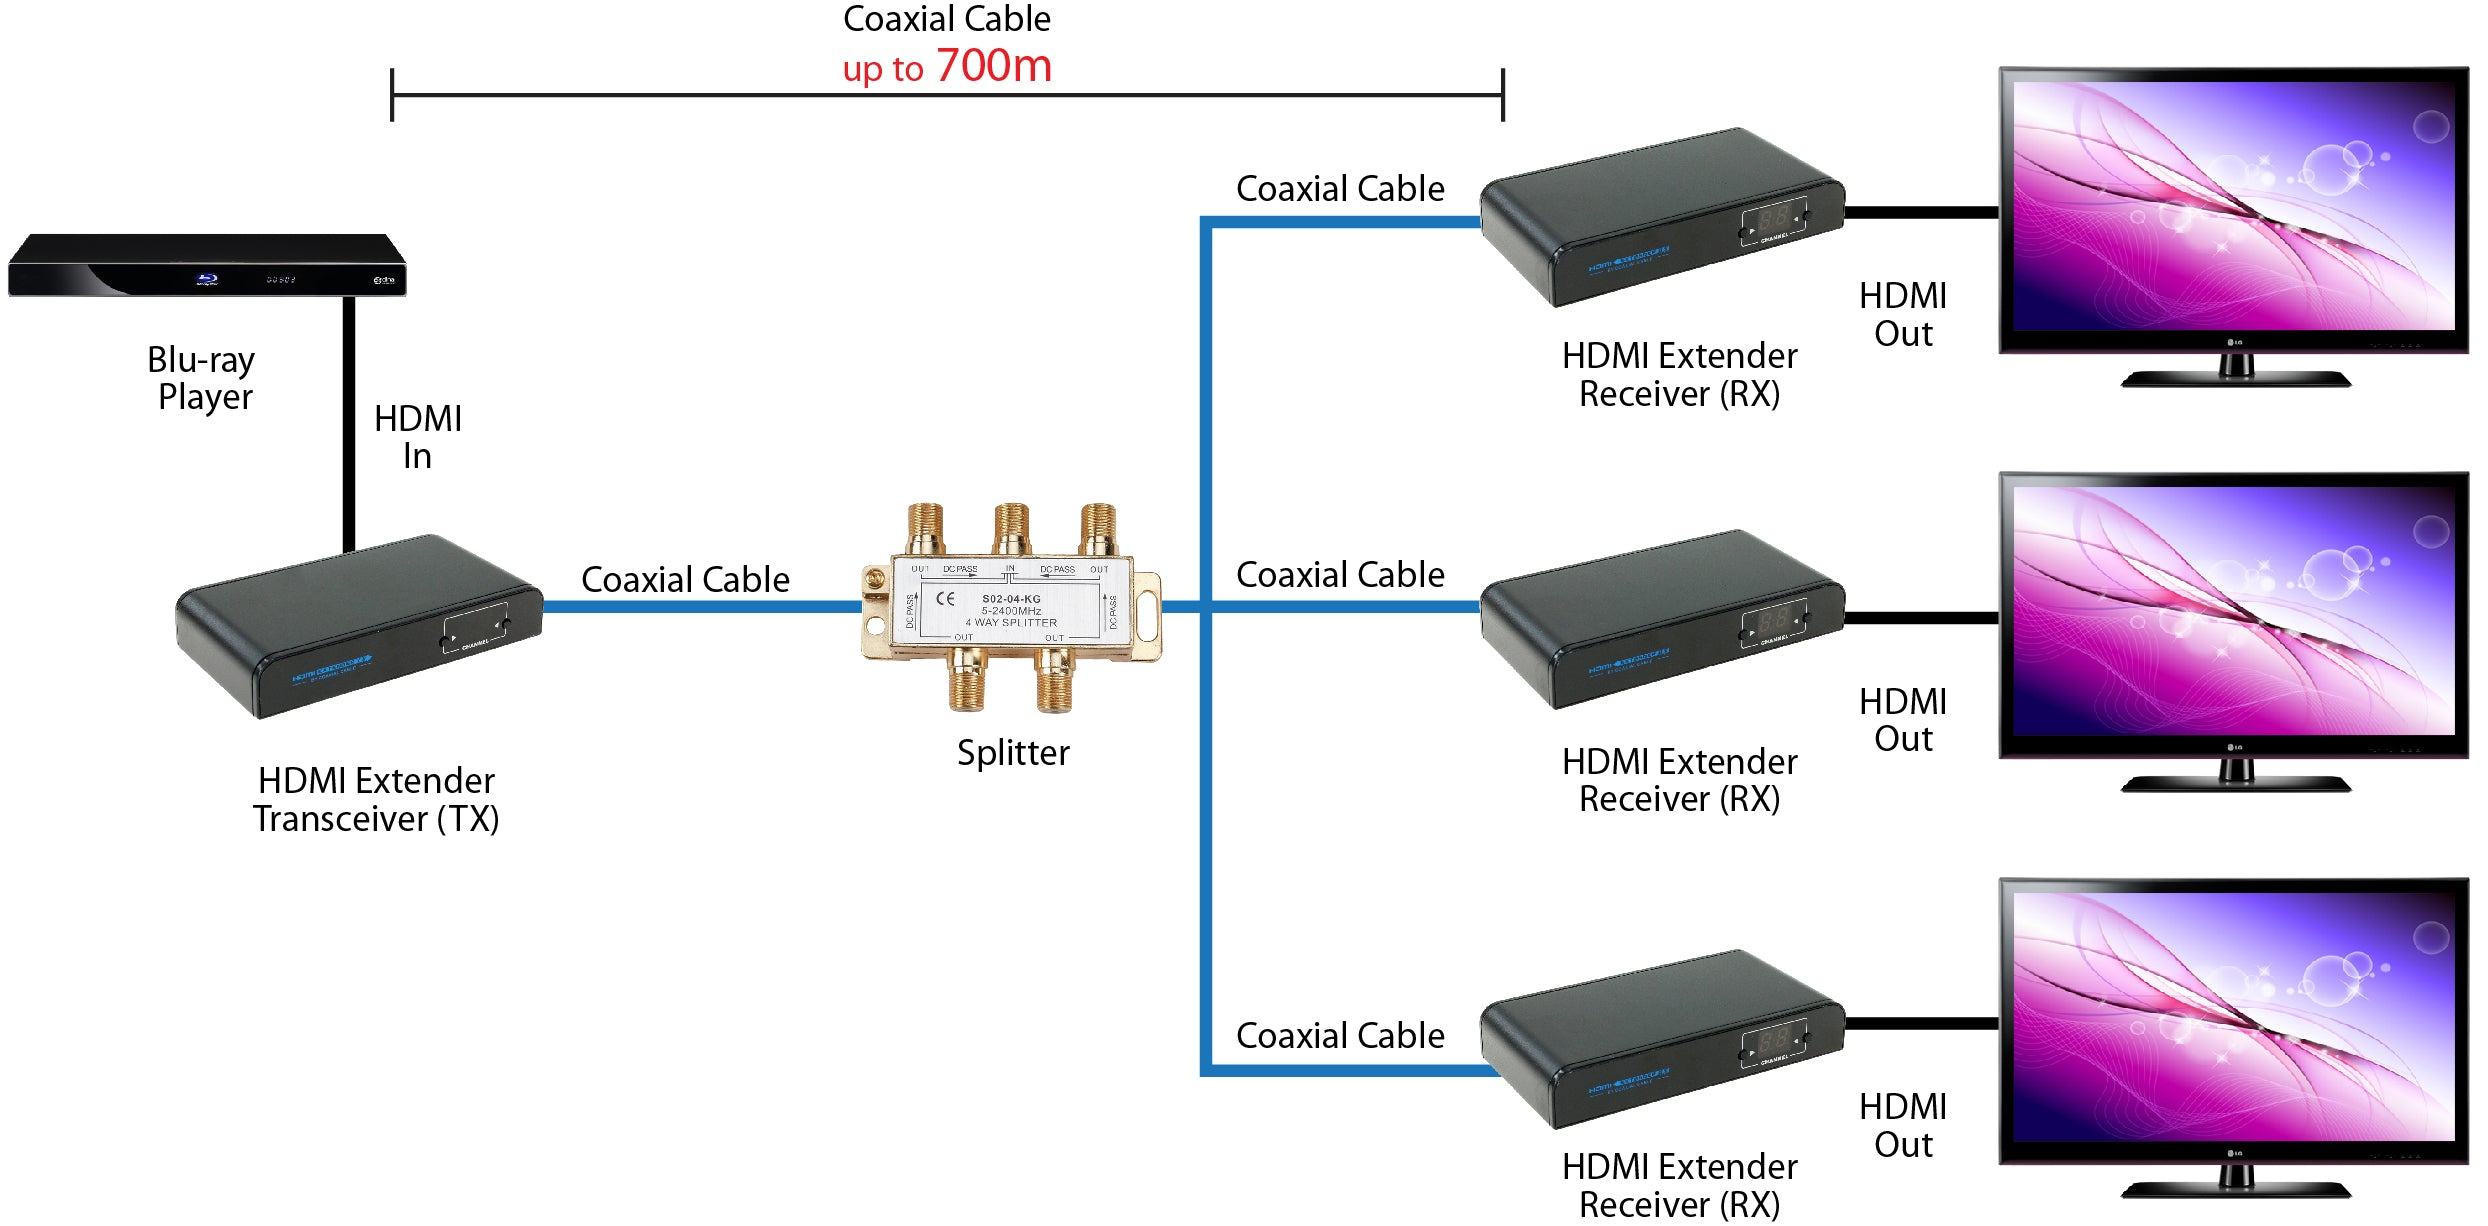 HDMI Extender Over Coaxial Cable (Up to 2297ft One-to-One at 1080p, Split to More Monitors), Split Connection